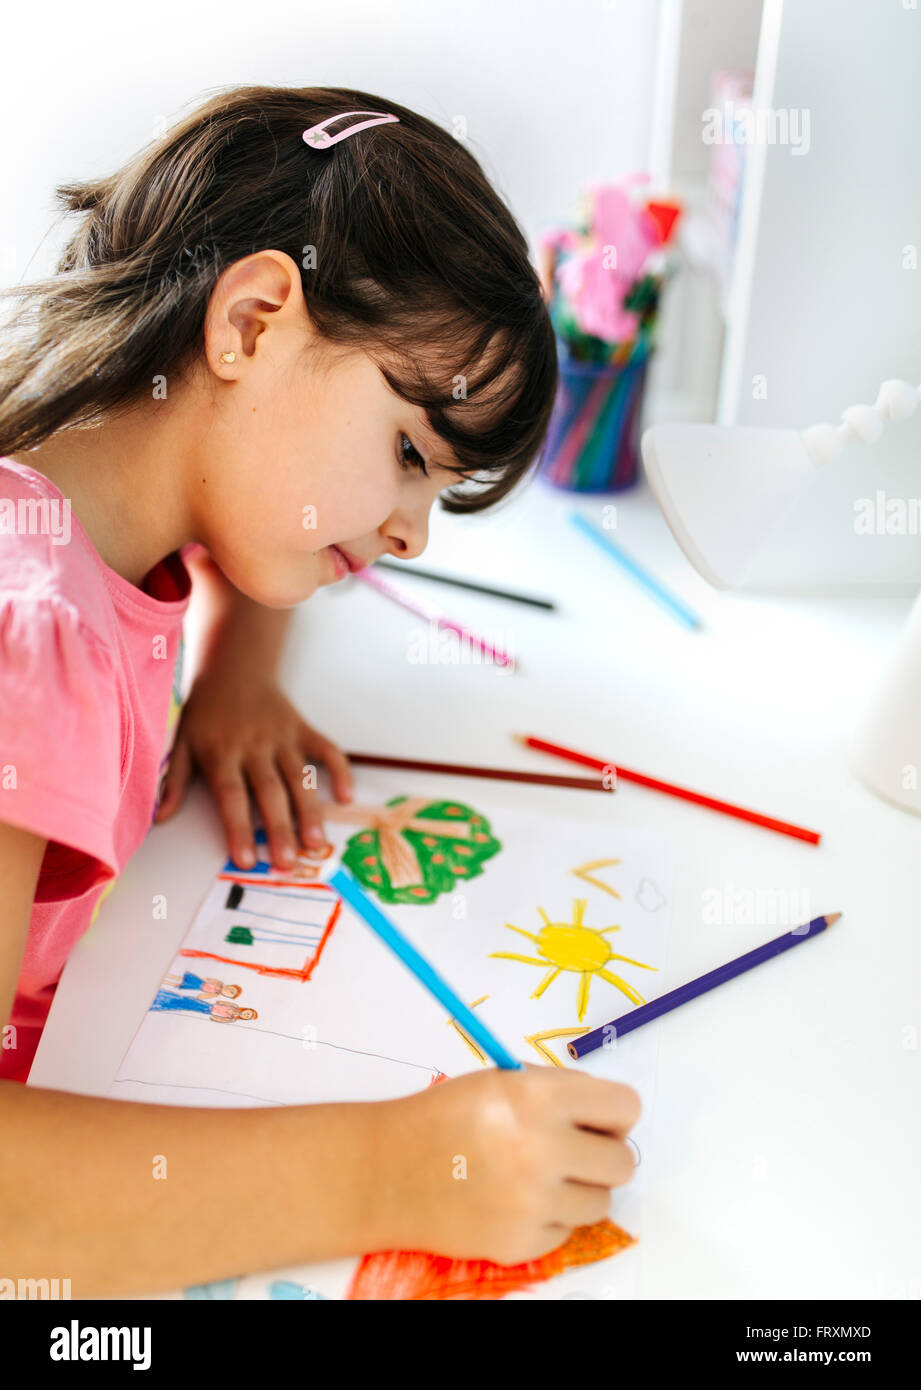 Little girl drawing on his desk at home - Stock Image